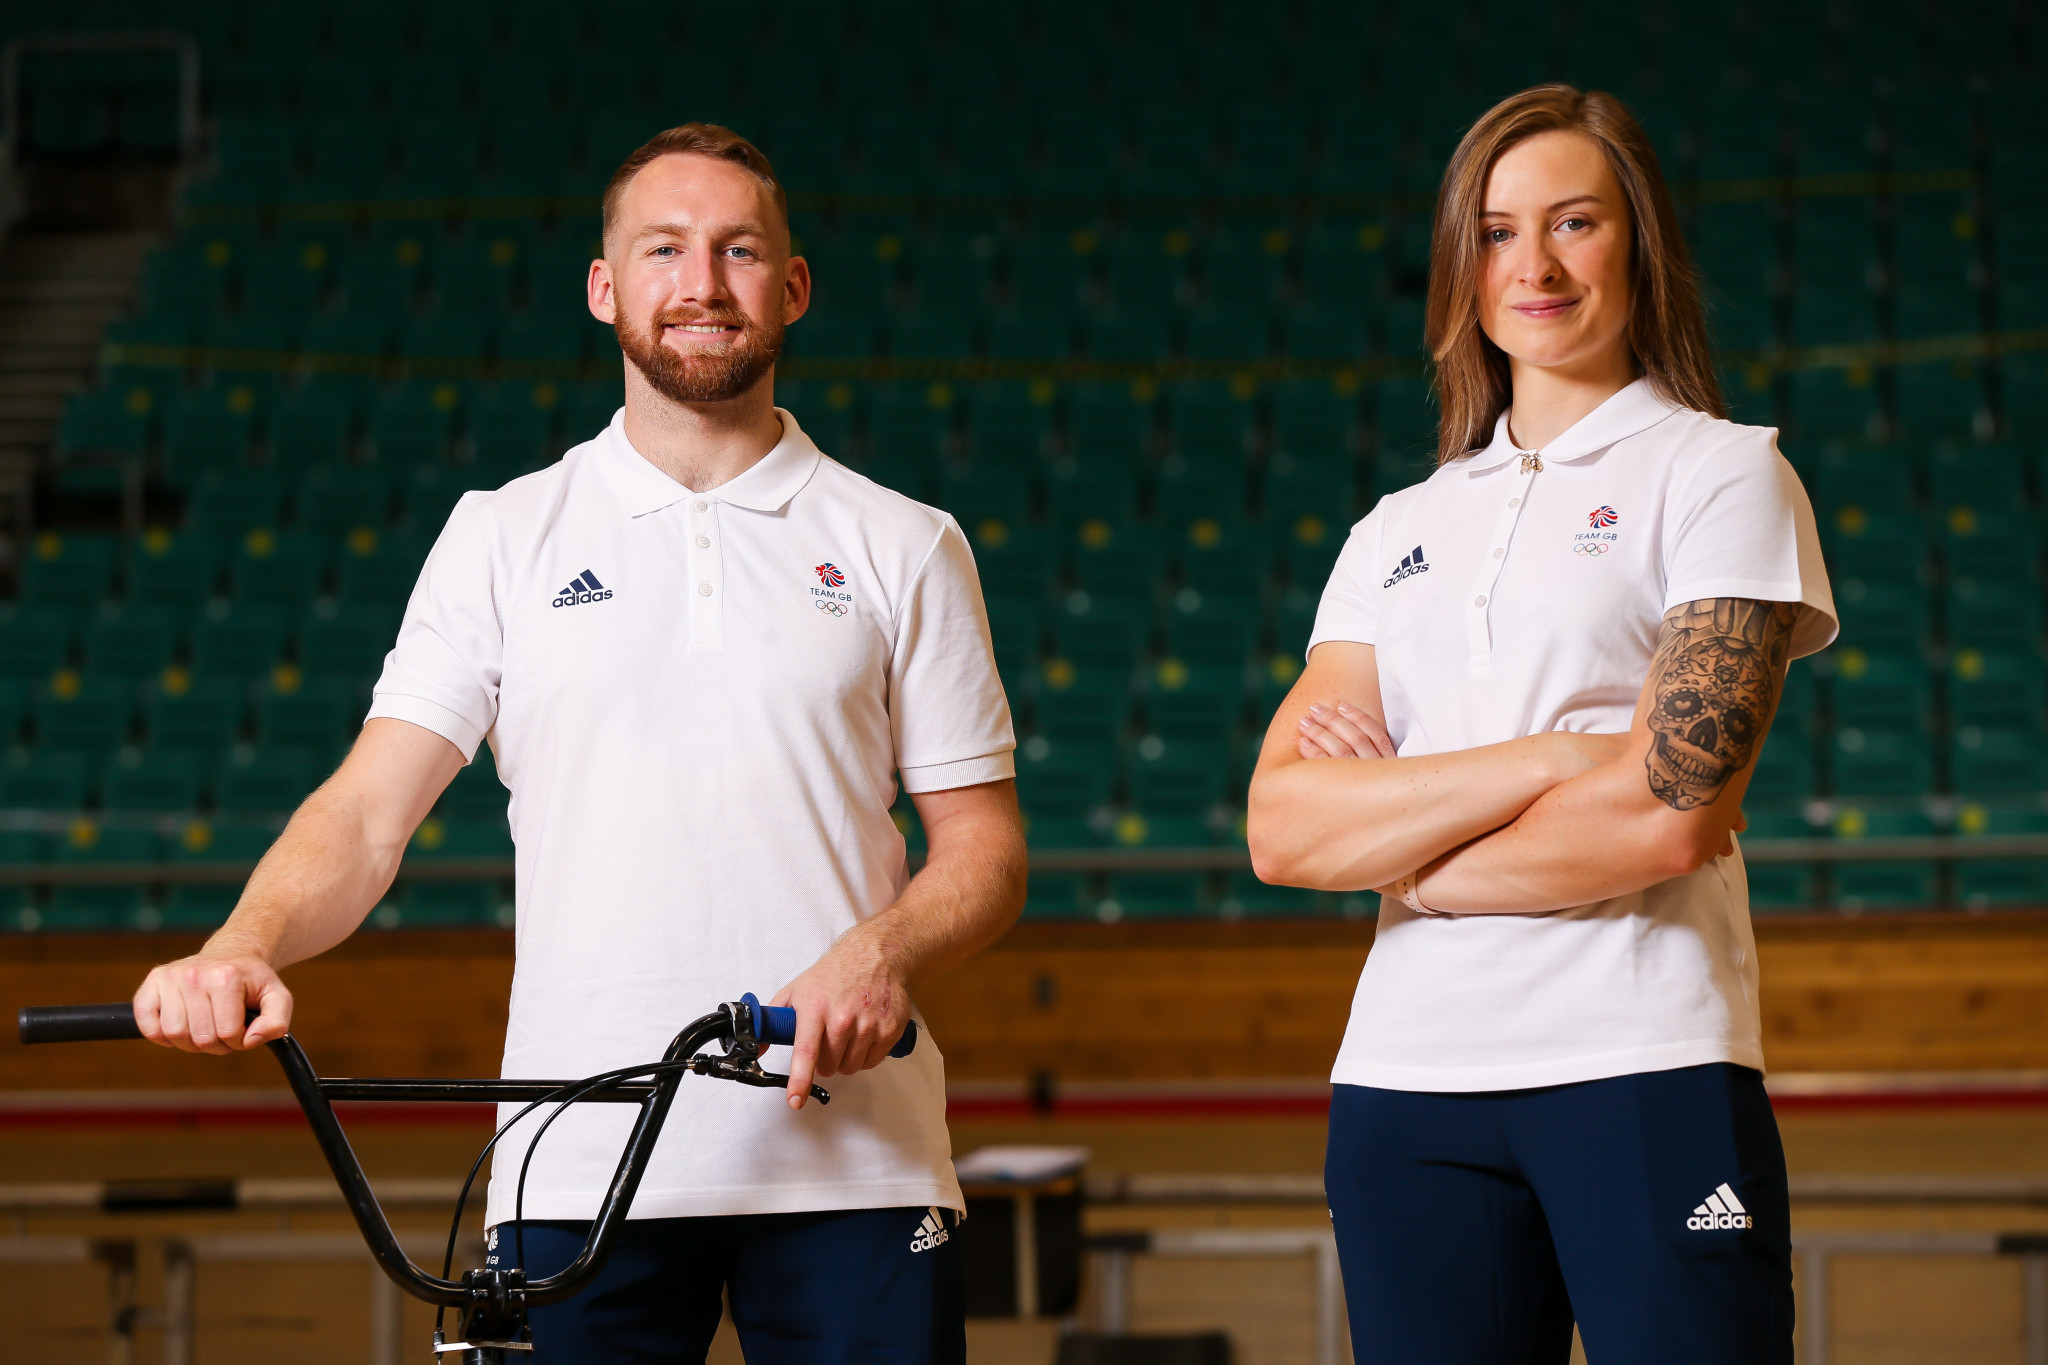 British Cycling announces plans to build on BMX freestyle Olympic success with £1 million investment